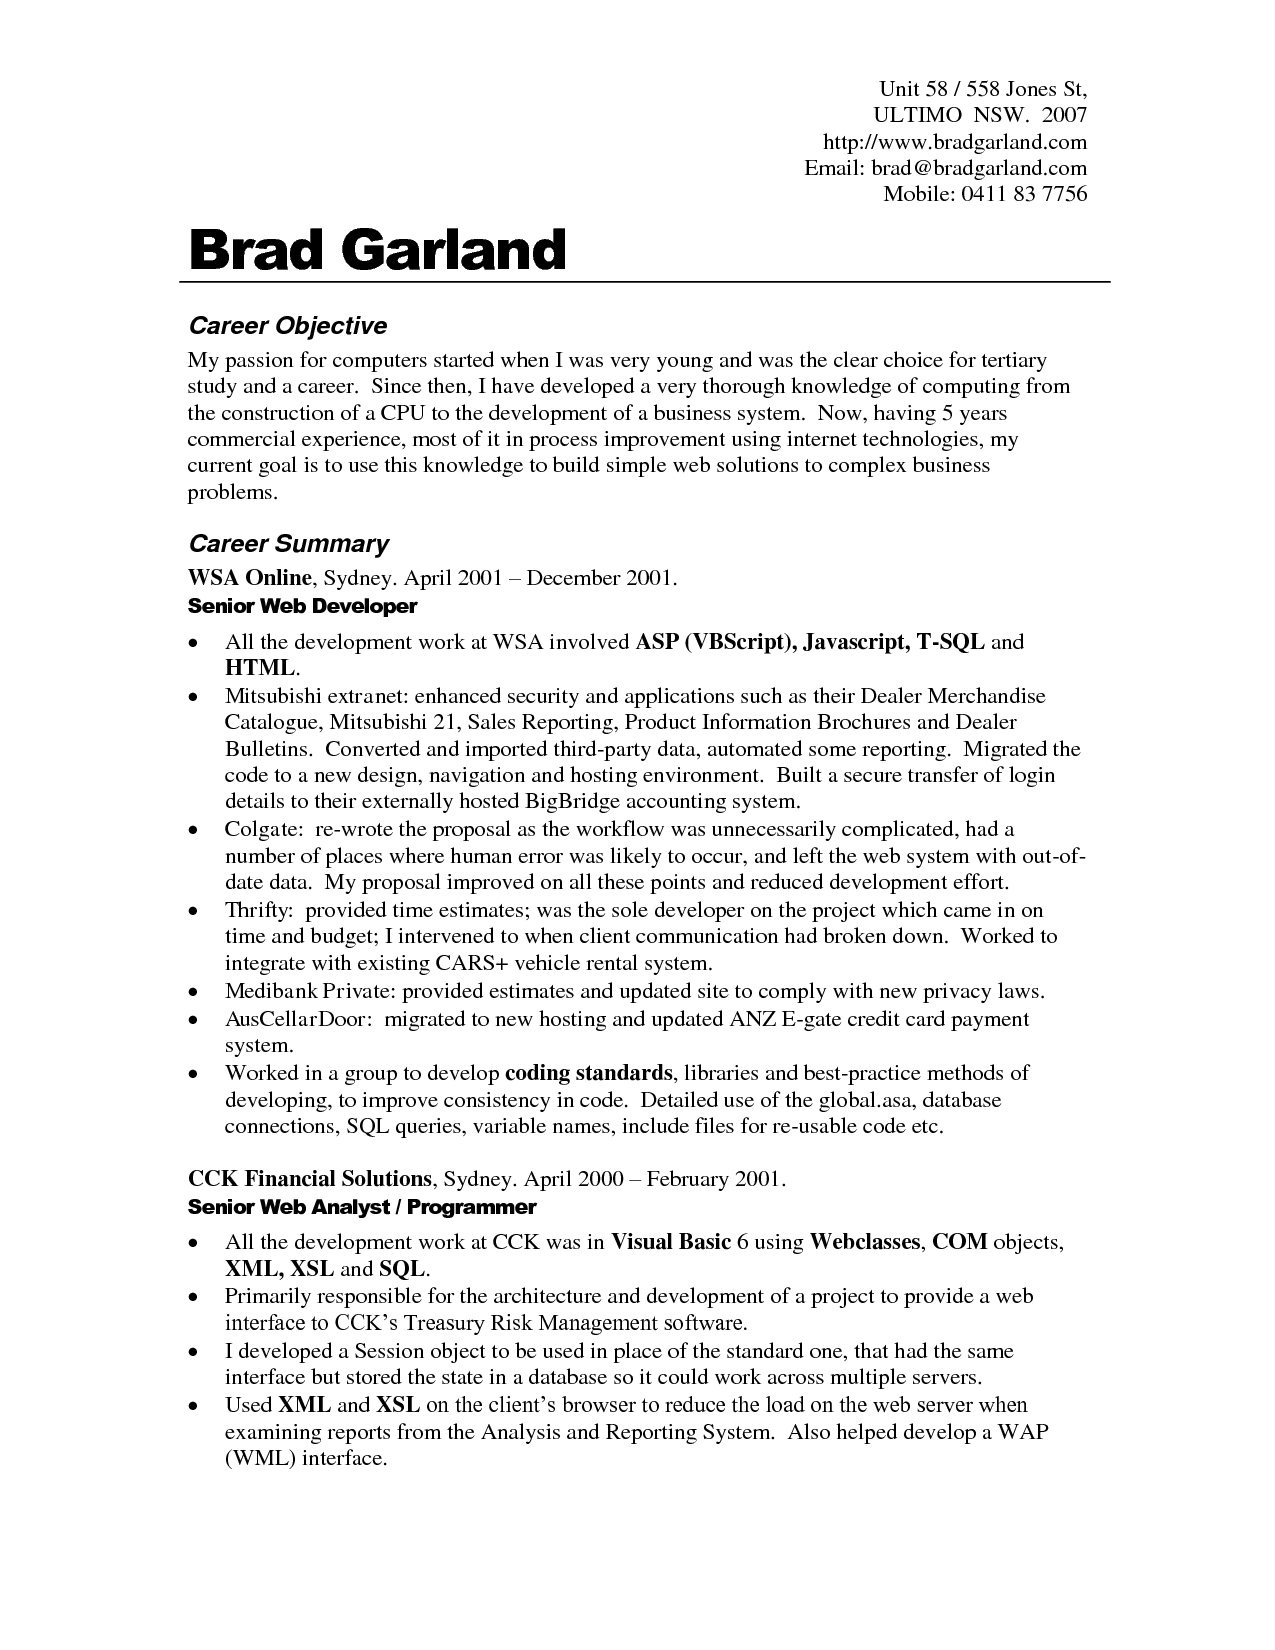 Career Goals Resume Resume Objectives Examples Best Templateresume Objective